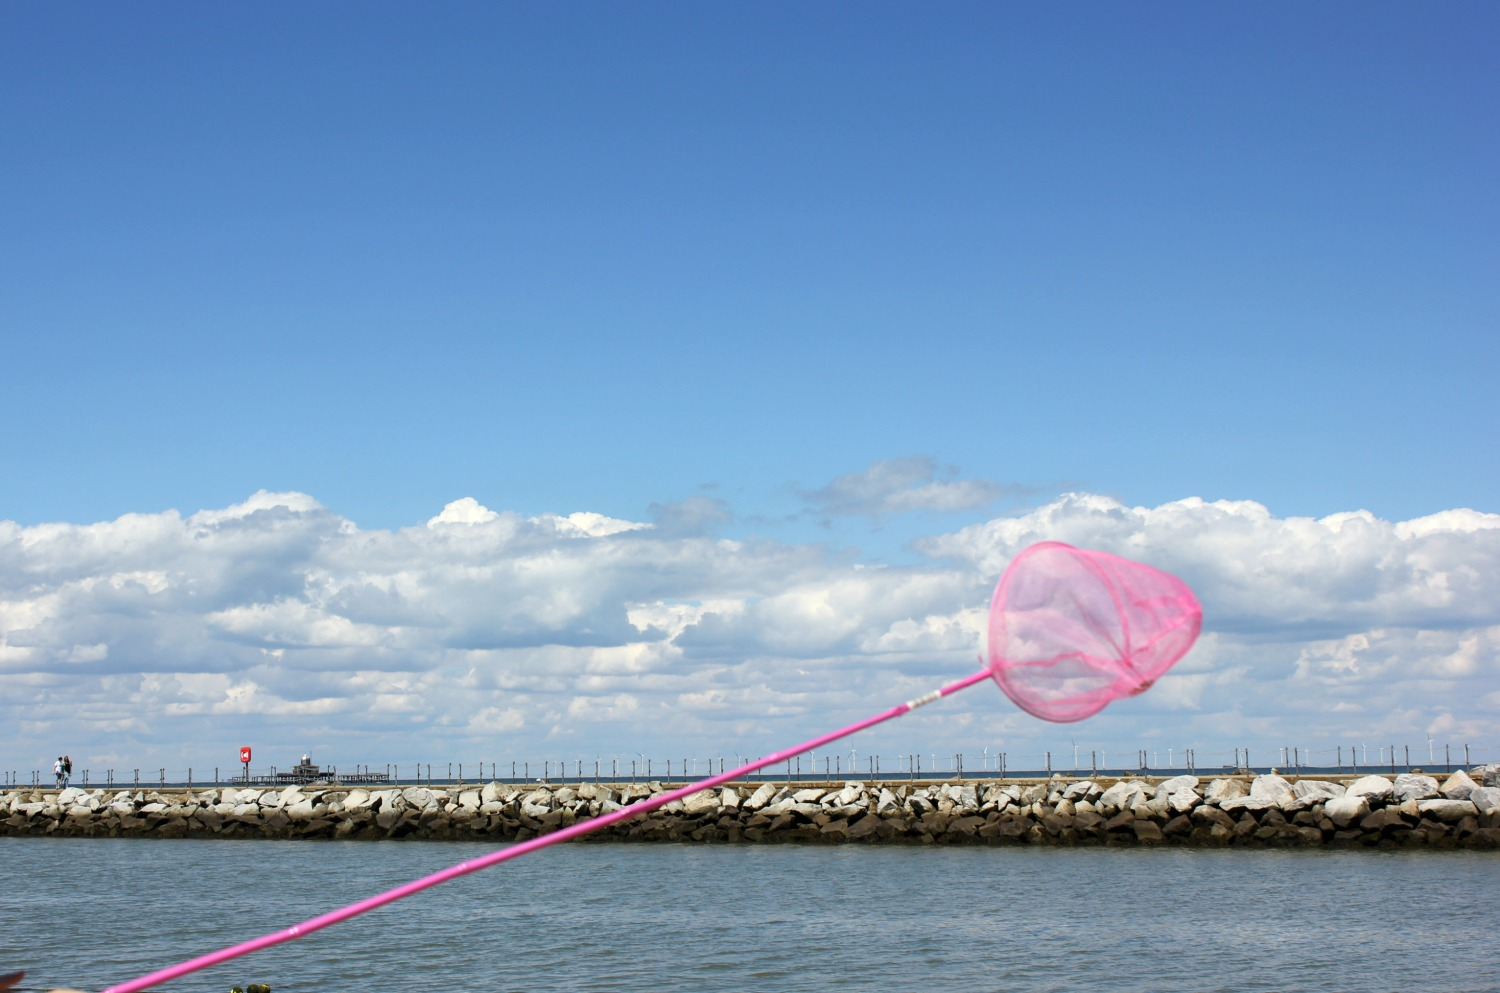 Letting your imagination run with with the help of a child's net - catching 'sharks' in the shallows at Herne Bay in Kent